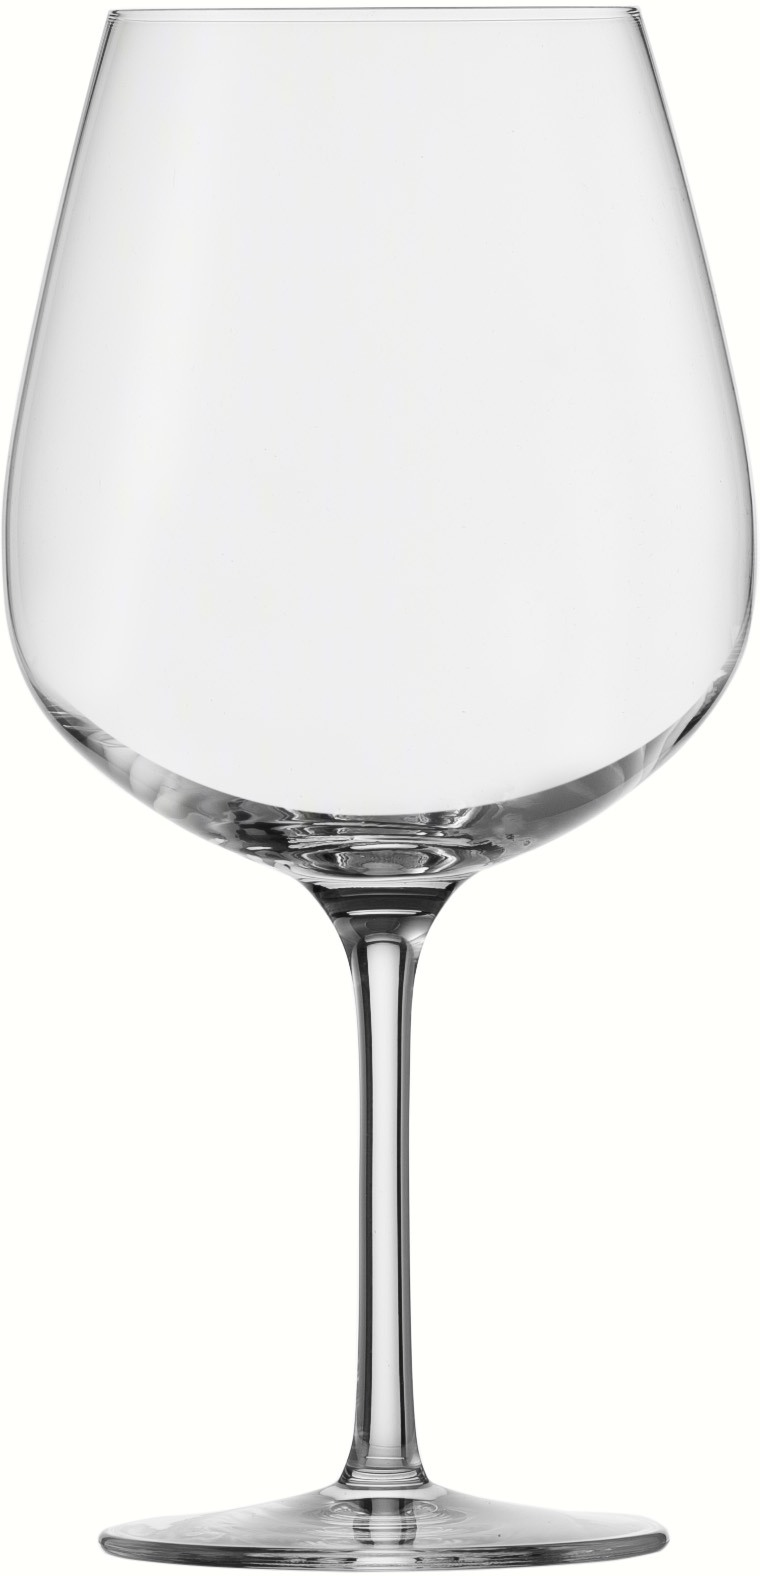 Vinezza SP Burgundy Glass (Set of 2) by Eisch Products